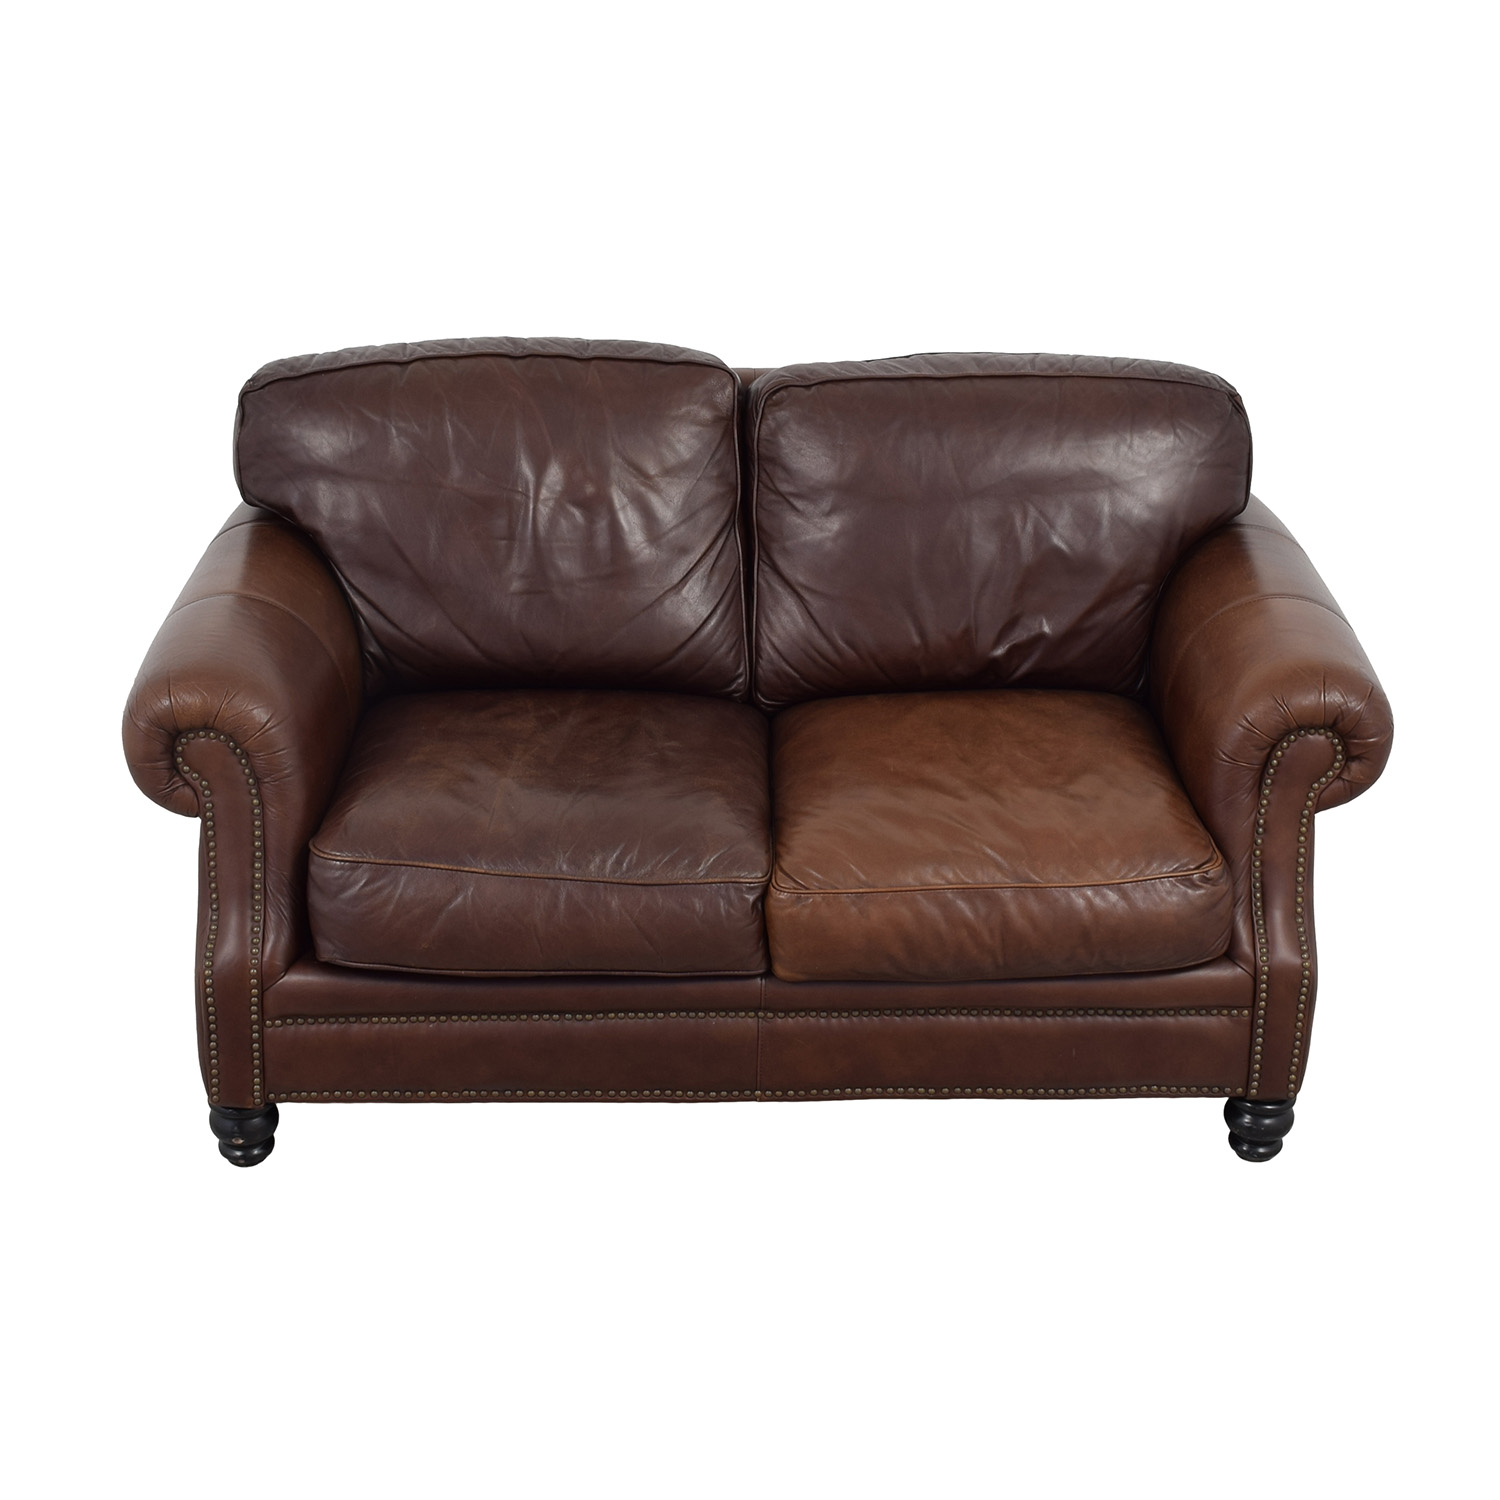 Bloomingdale's Bloomingdale's Brown Leather Loveseat for sale